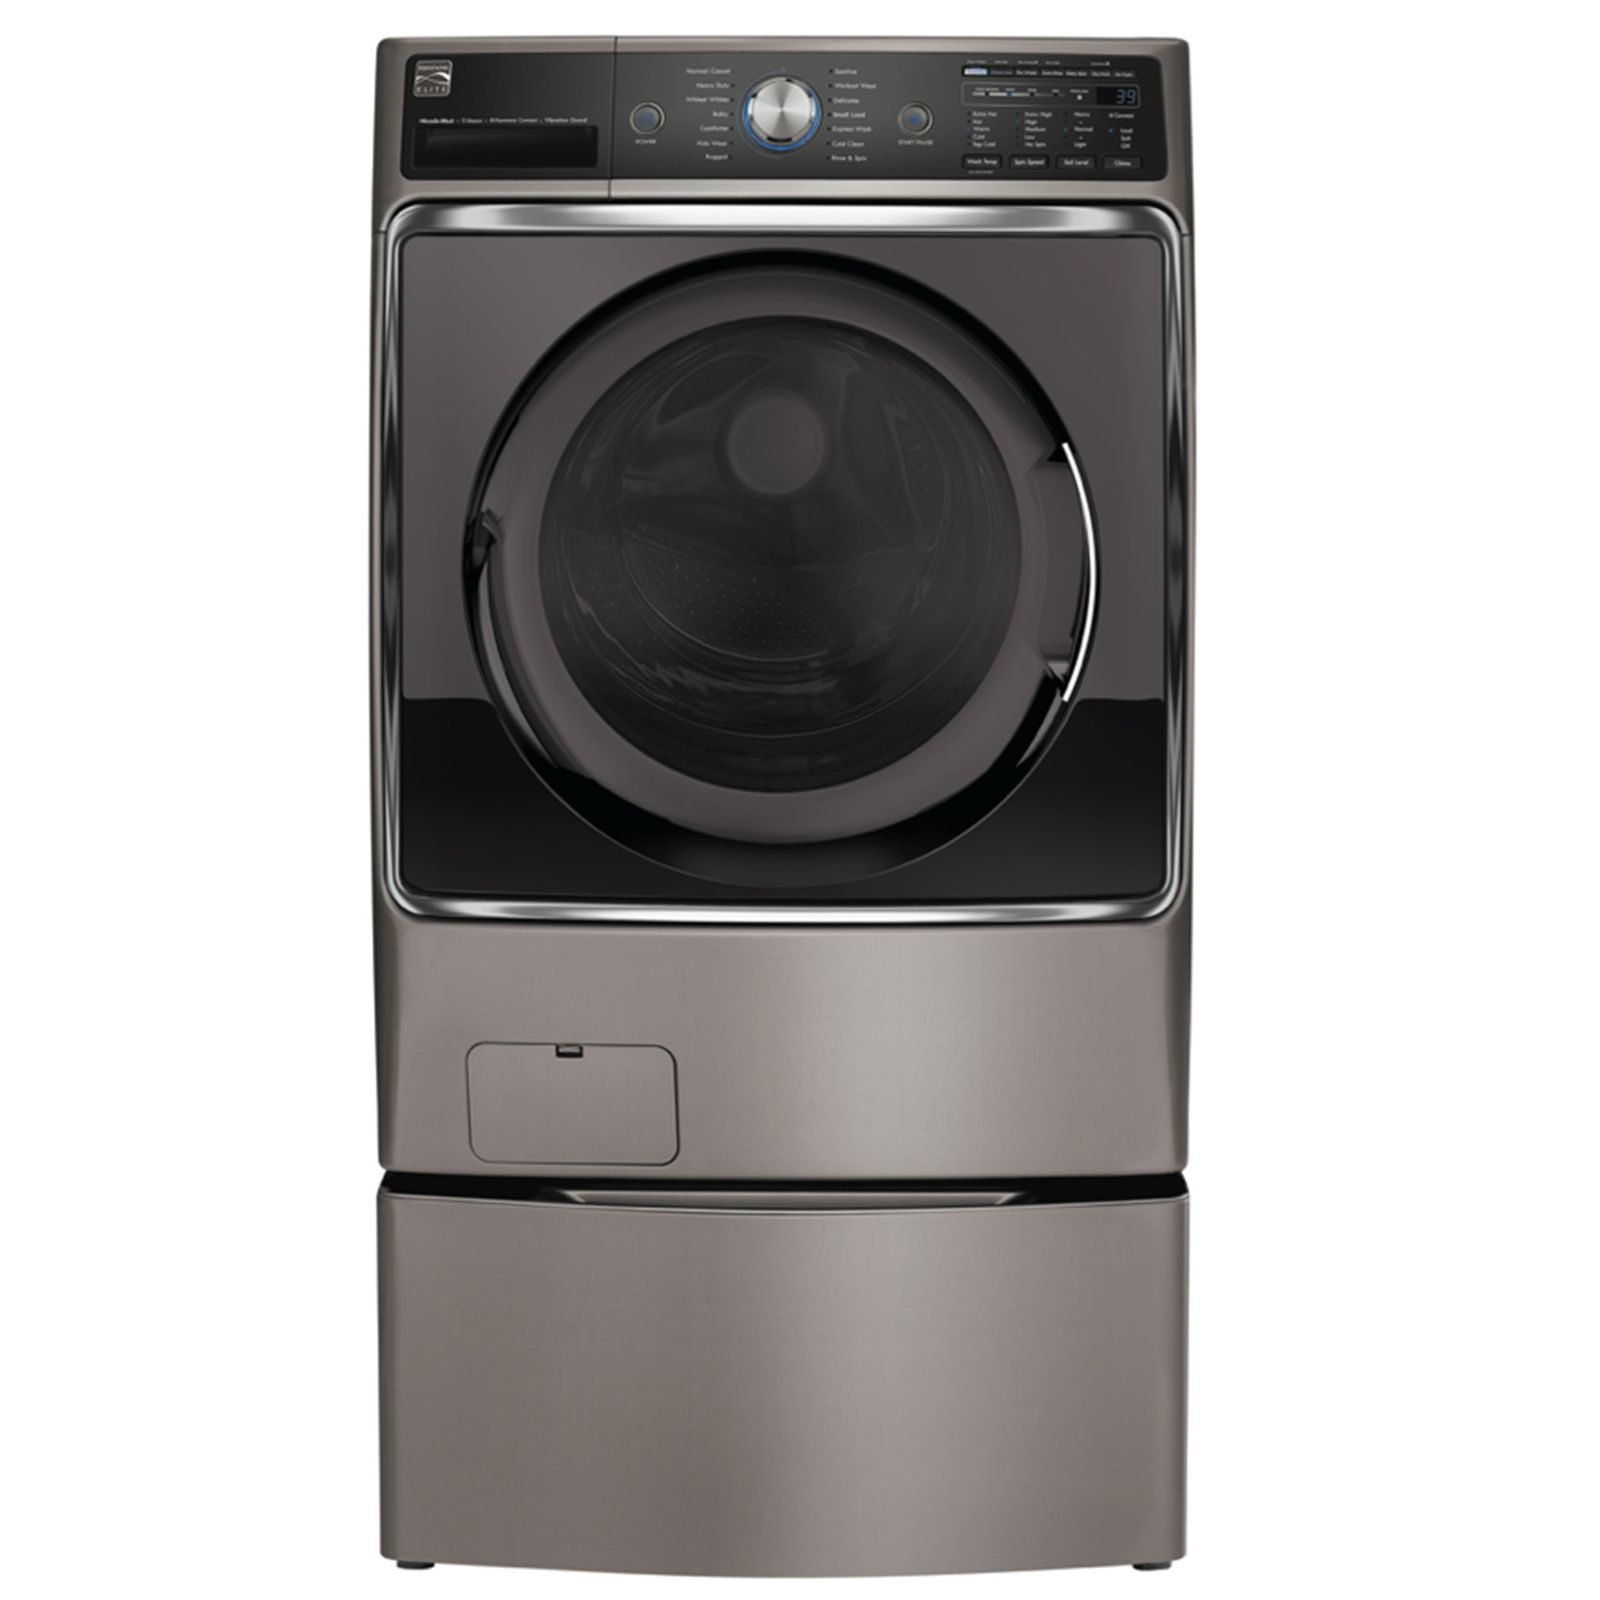 Washing Machines: Kenmore Elite Washing Machine